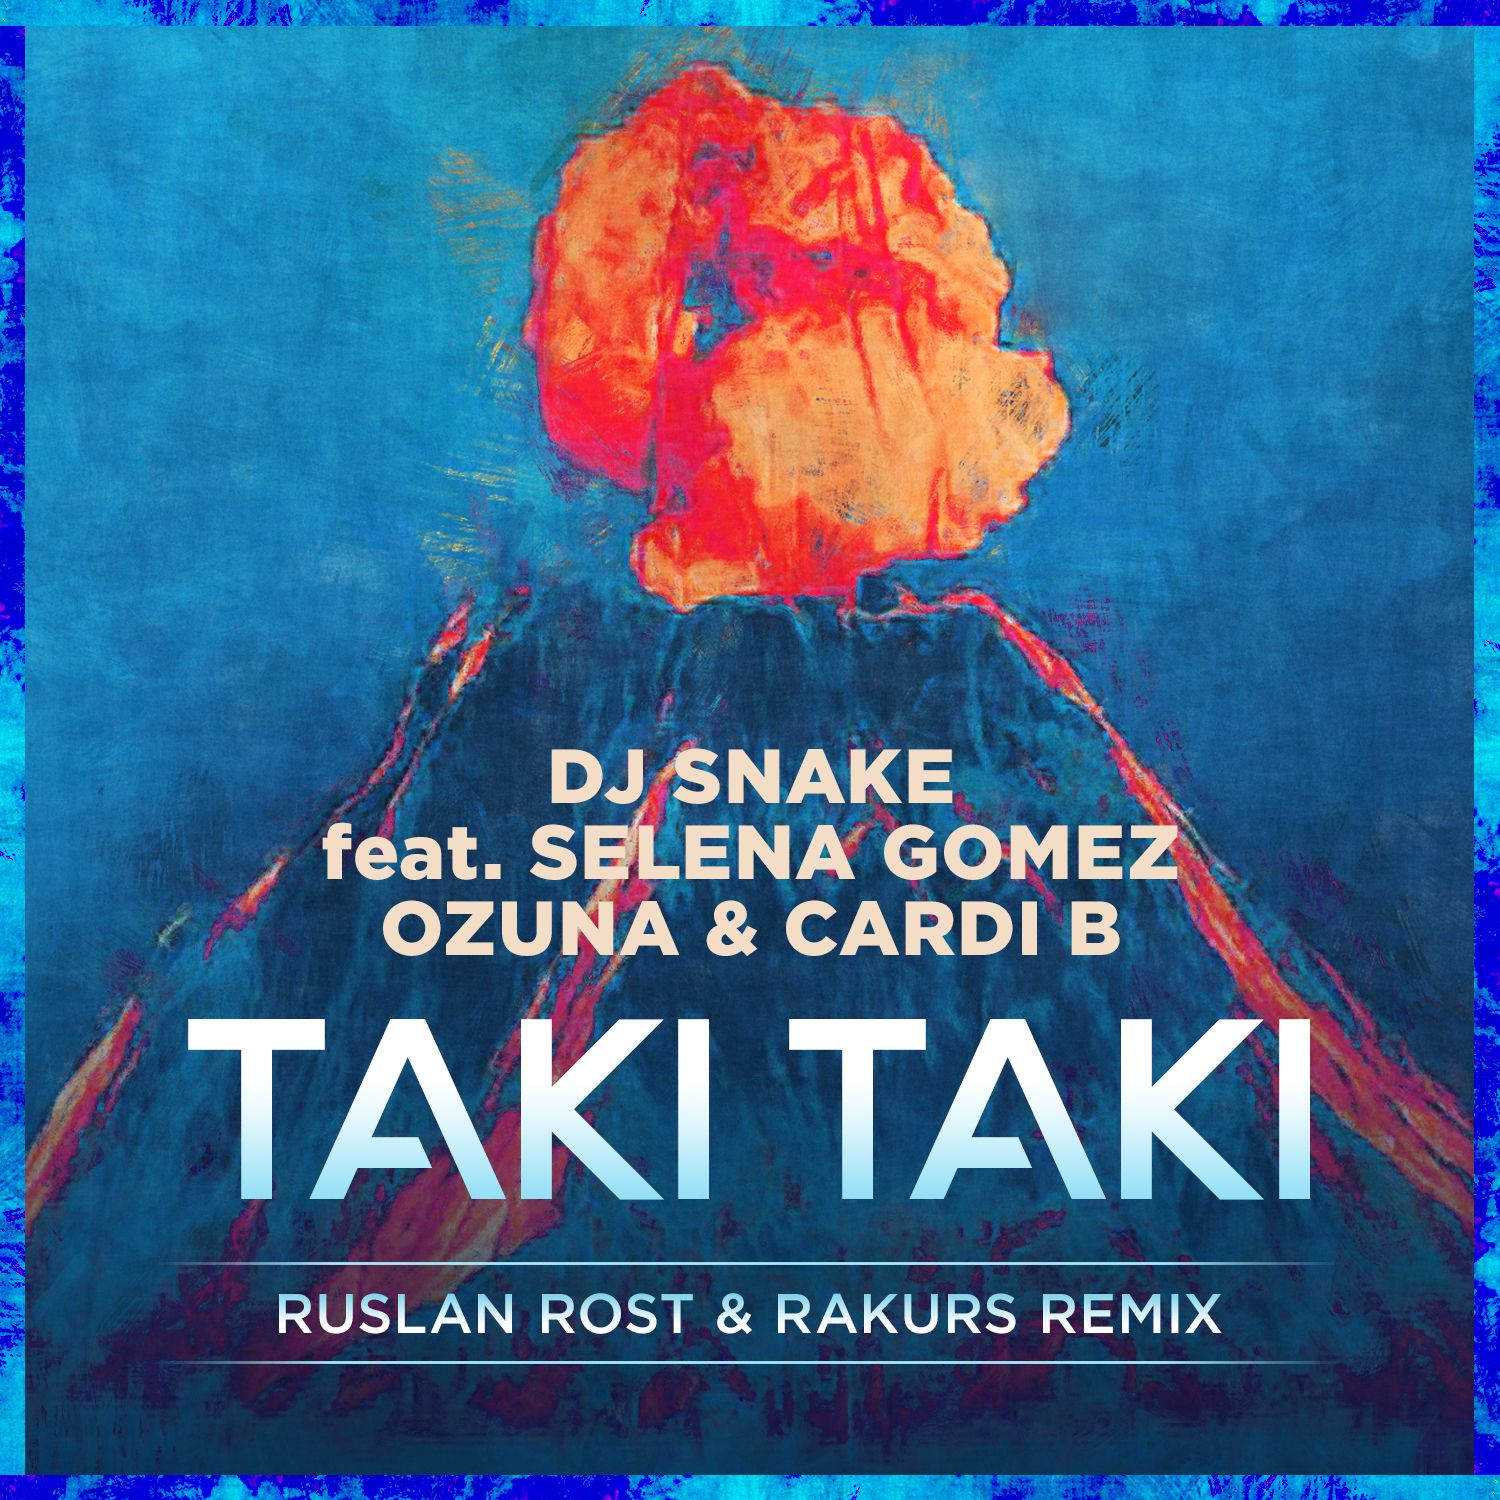 Salena Gomez Taki Taki Song Download: Dj Snake Feat. Selena Gomez, Ozuna & Cardi B